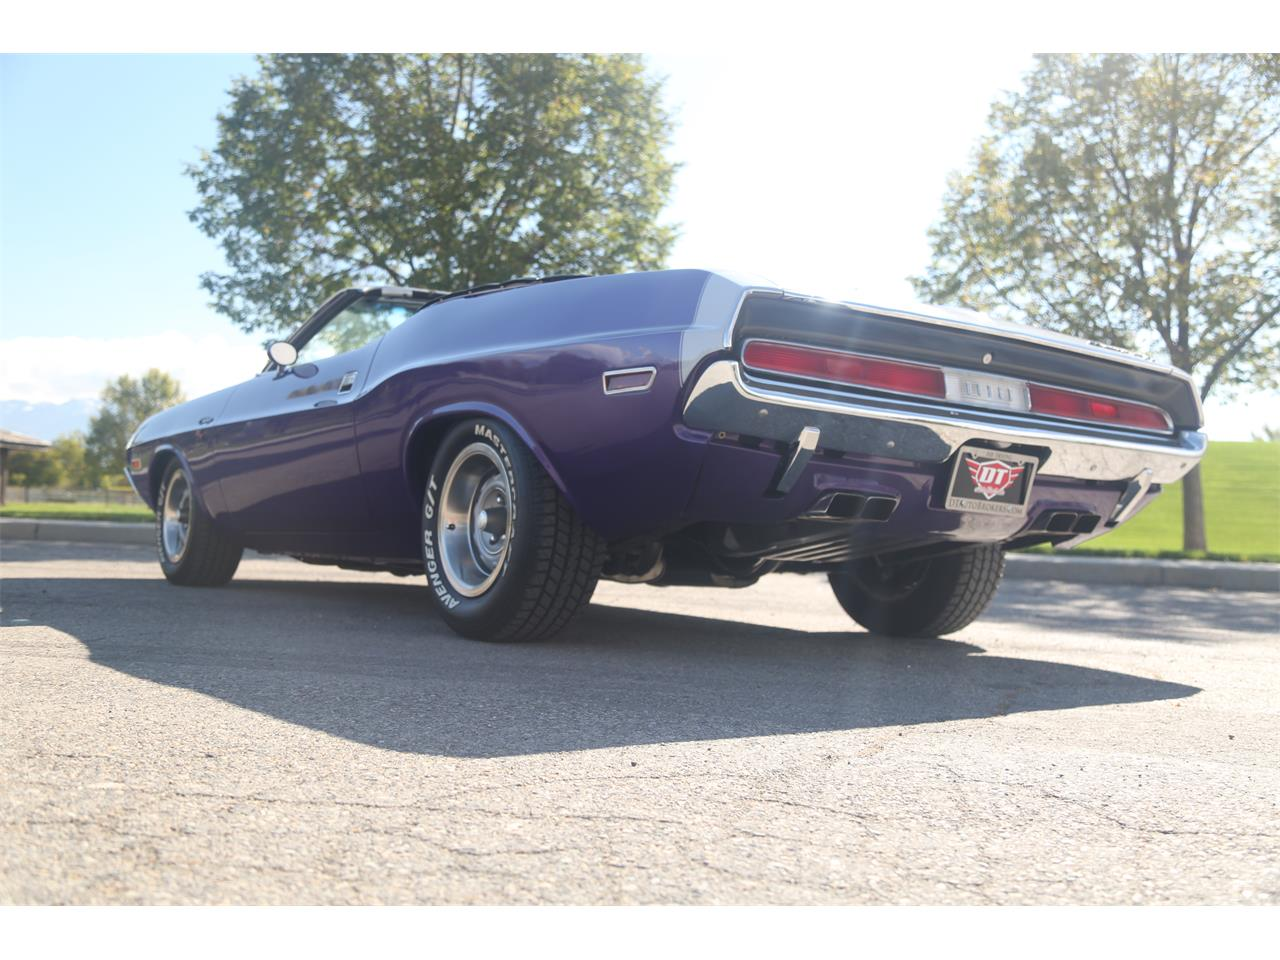 Large Picture of 1970 Challenger located in West Valley City Utah Offered by DT Auto Brokers - M9RV